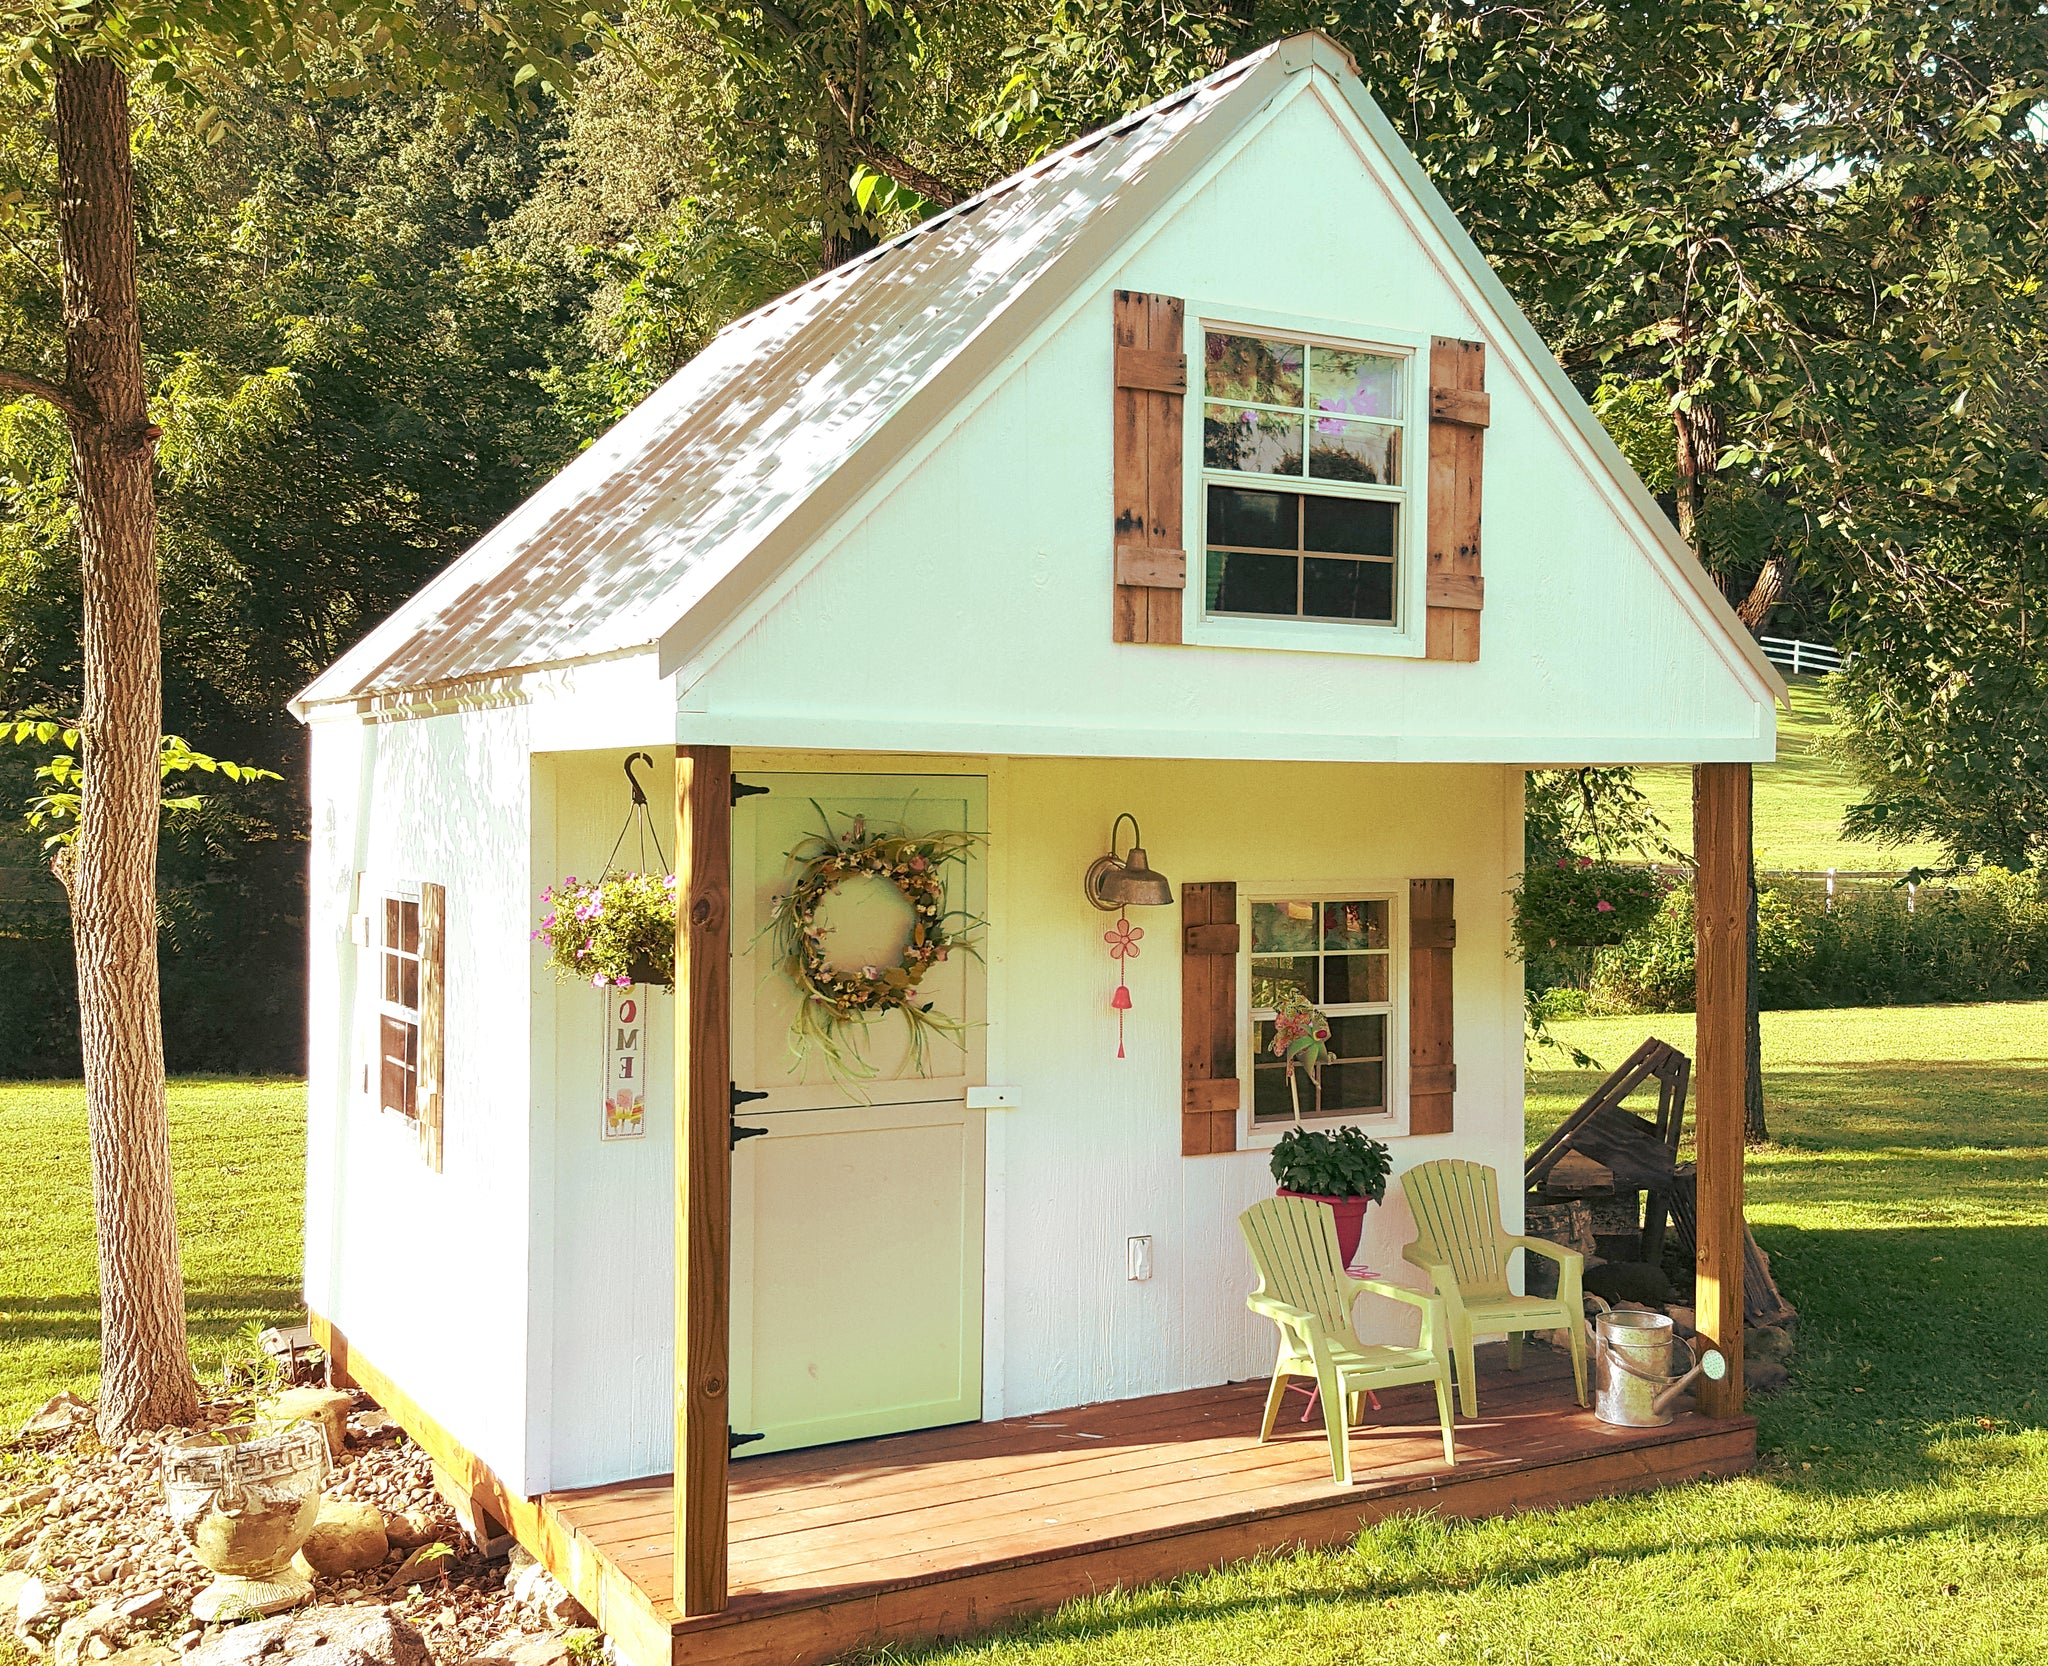 The green playhouse plan 60ft wood plan for kids paul for Playhouse with porch plans